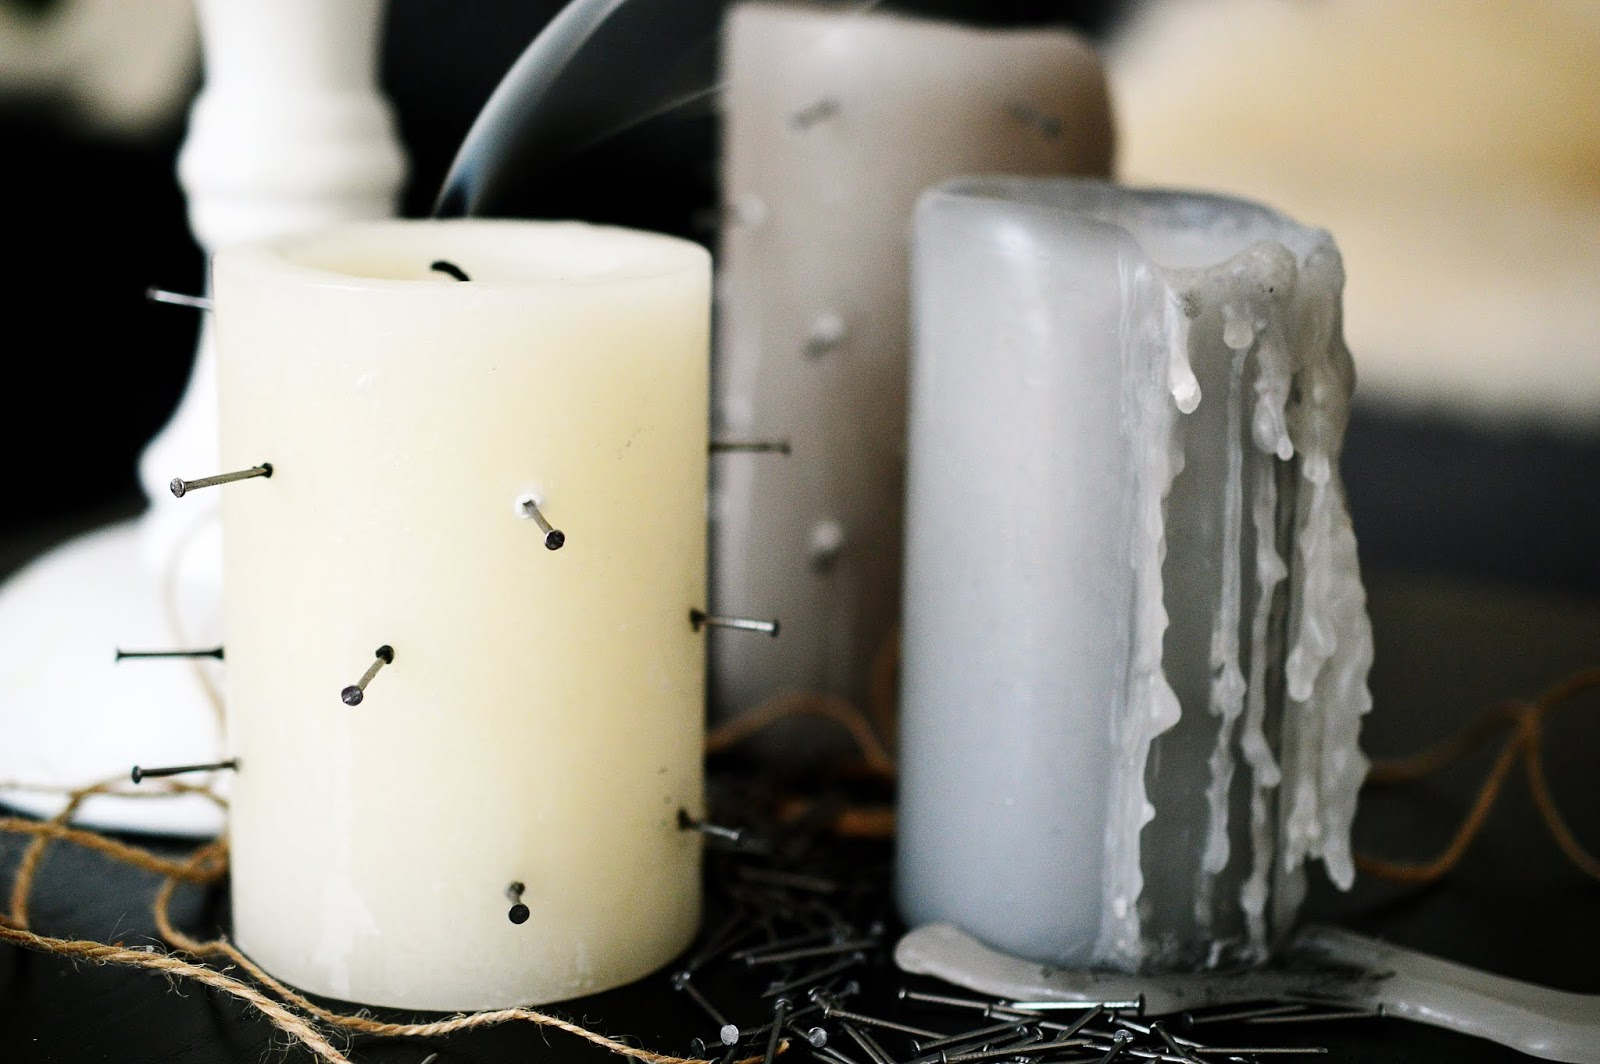 candles tortured by sticking nails in from the side for Halloween